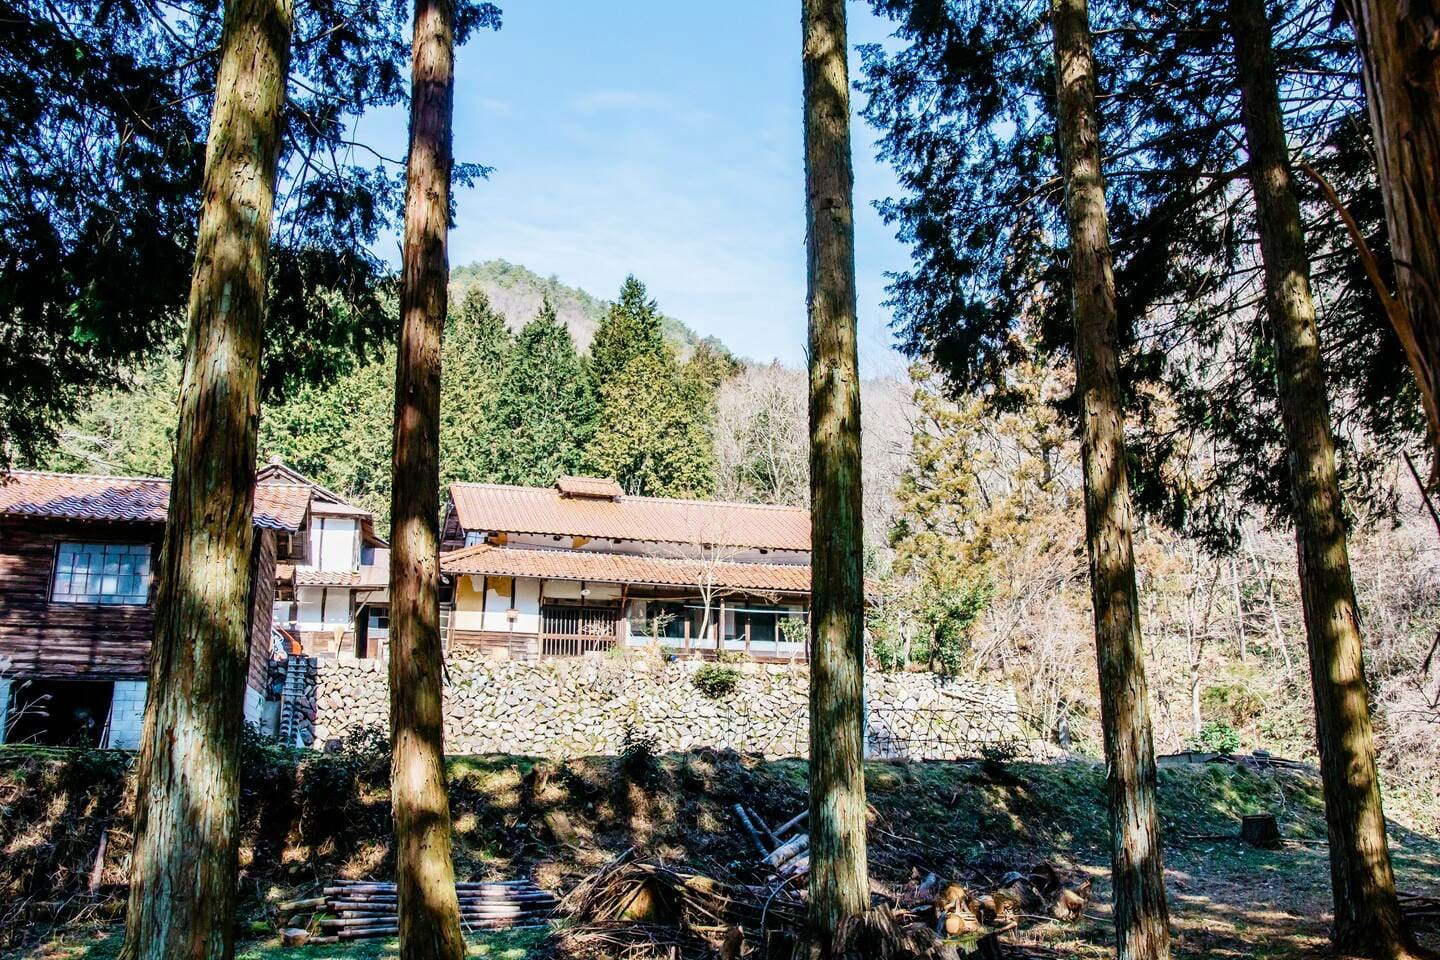 Hello, we are Kurashijuku-ofuru. Please come to see real and traditional Japanese life in Country side!